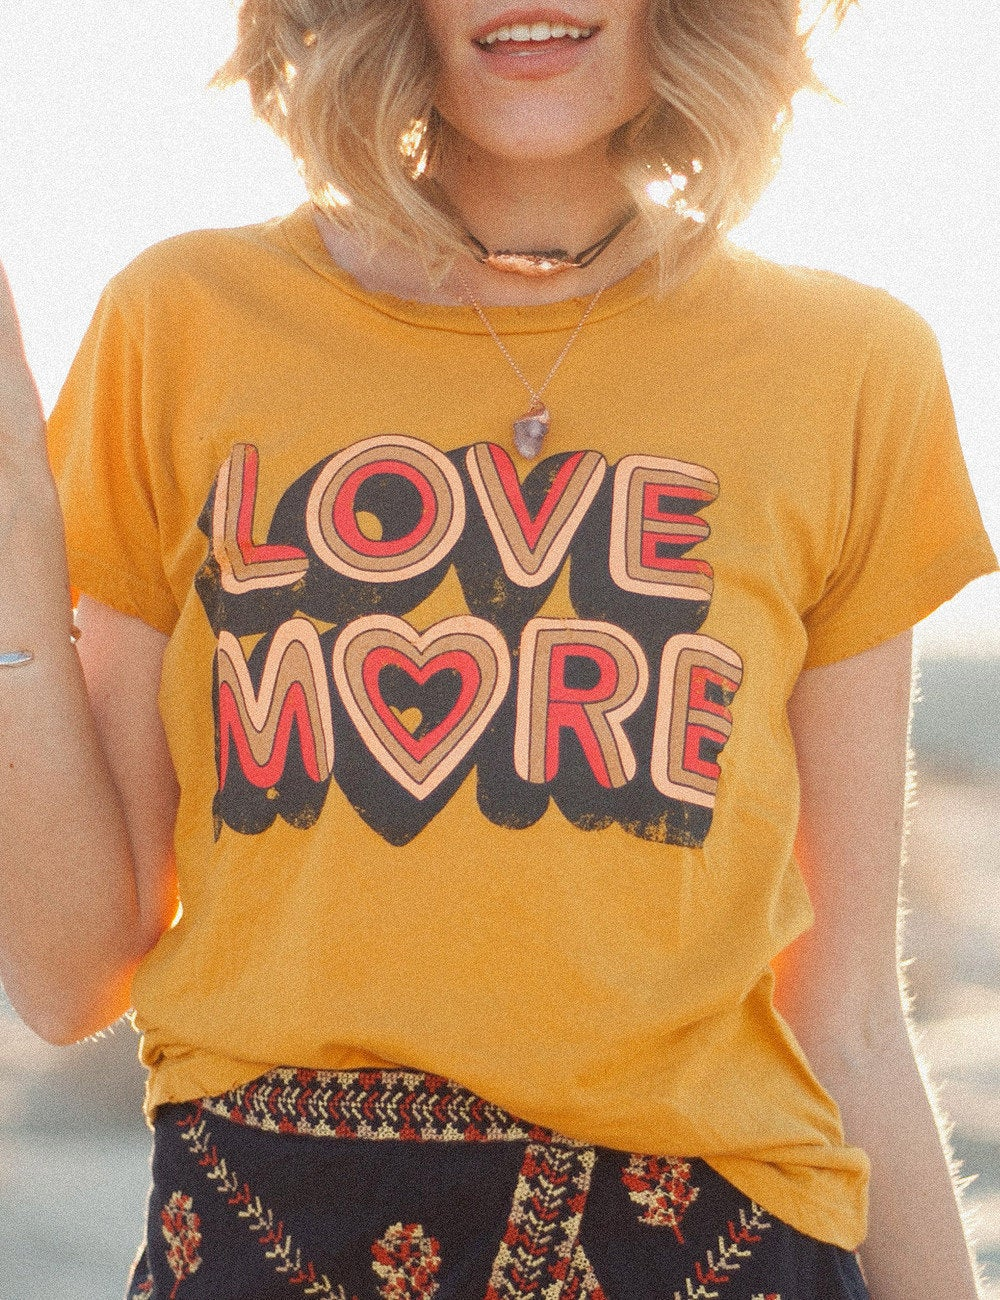 HTB1of76b2Bj uVjSZFpq6A0SXXaE - Summer Love More Letters Sweet Style Casual white Tshirts Vintage 80S 90s Graphic Cotton Tees Plus Size Ins Fashion Tshirt Women